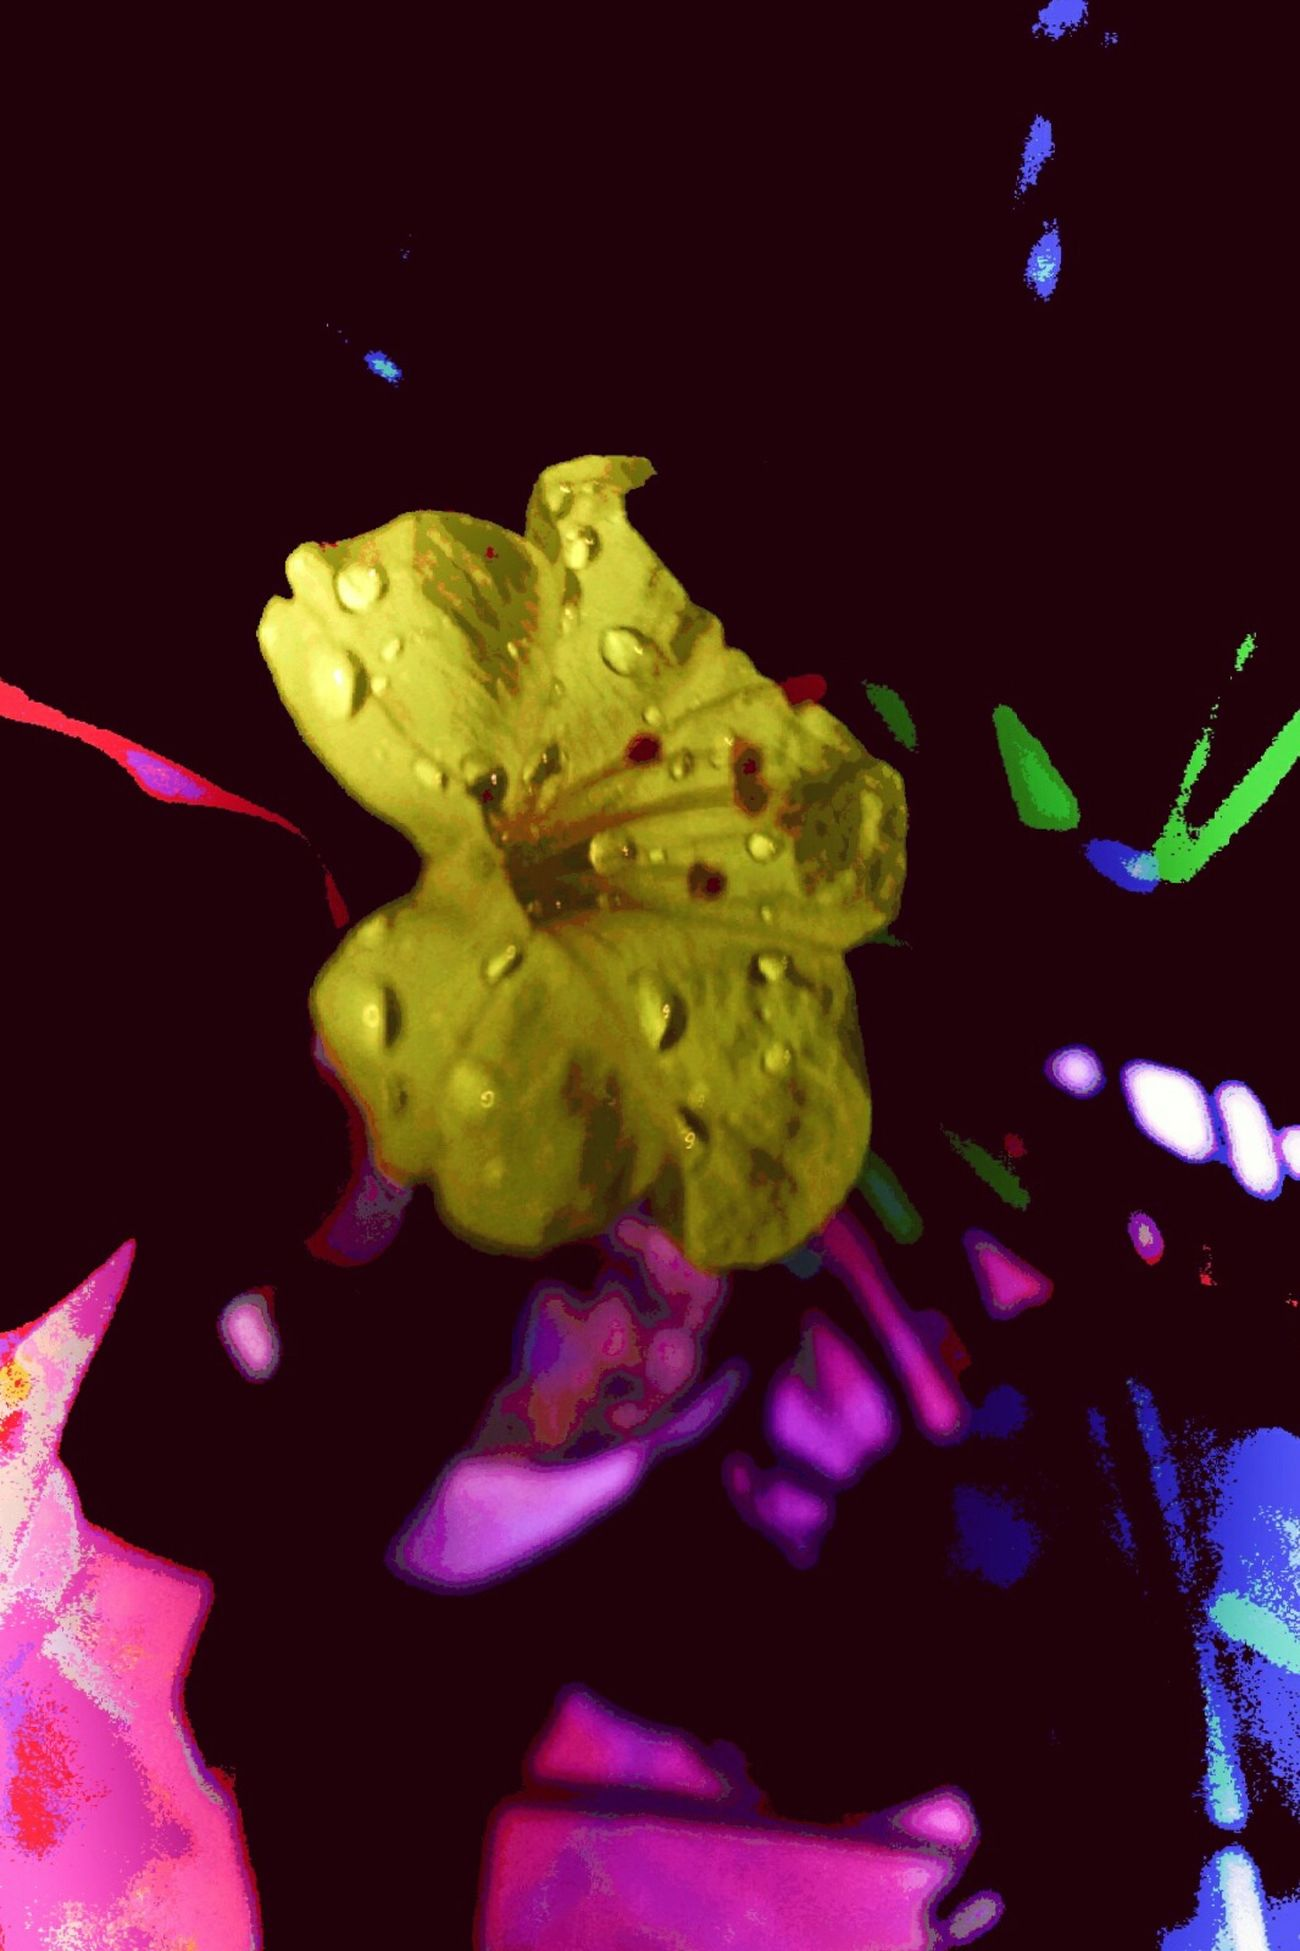 Flower Foto Editada Editada Edite By Me Edited